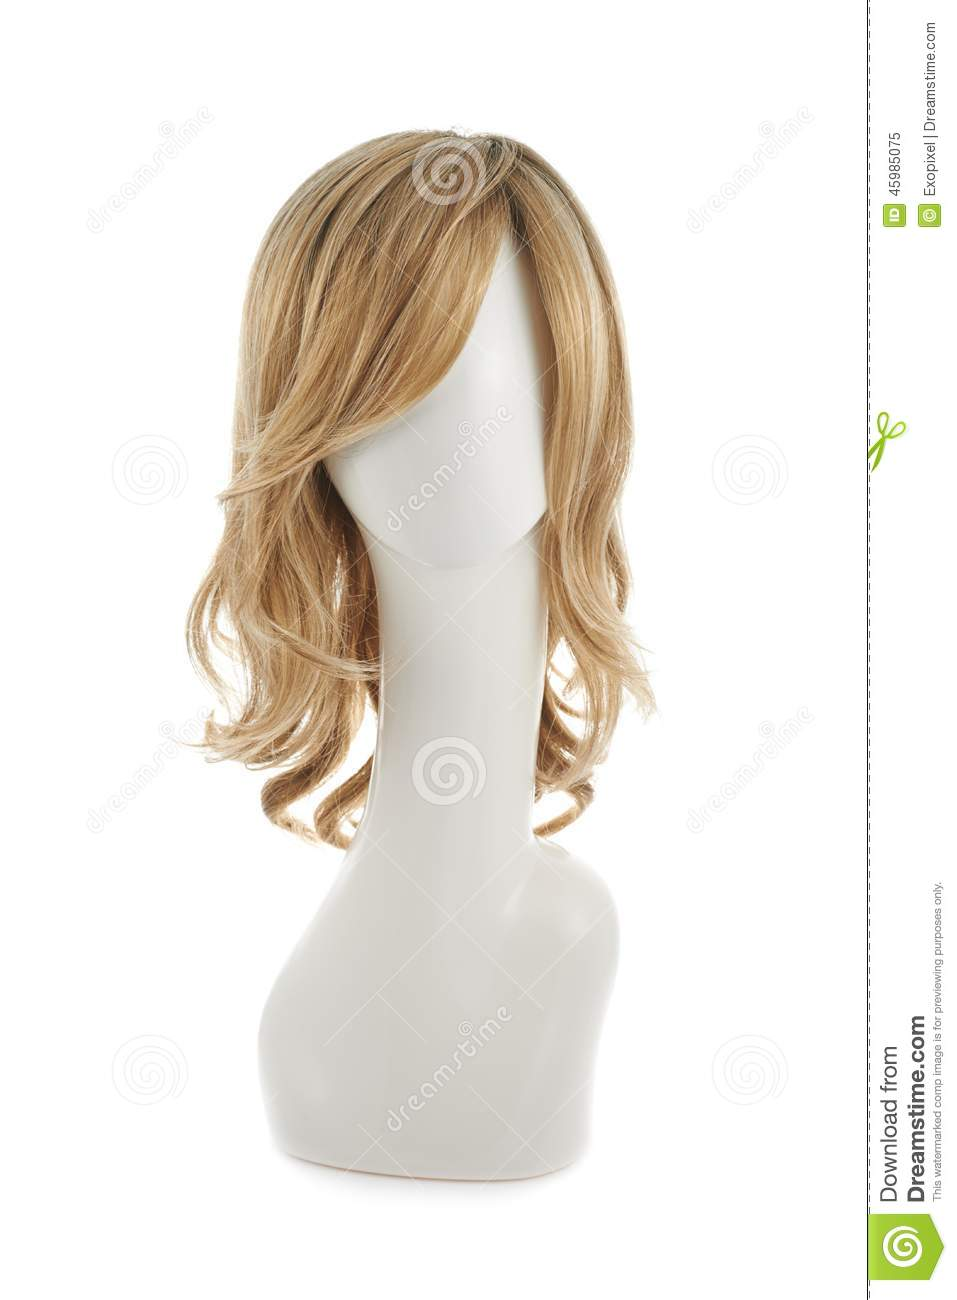 Hair Wig Over The Mannequin Head Stock Photo Image 45985075